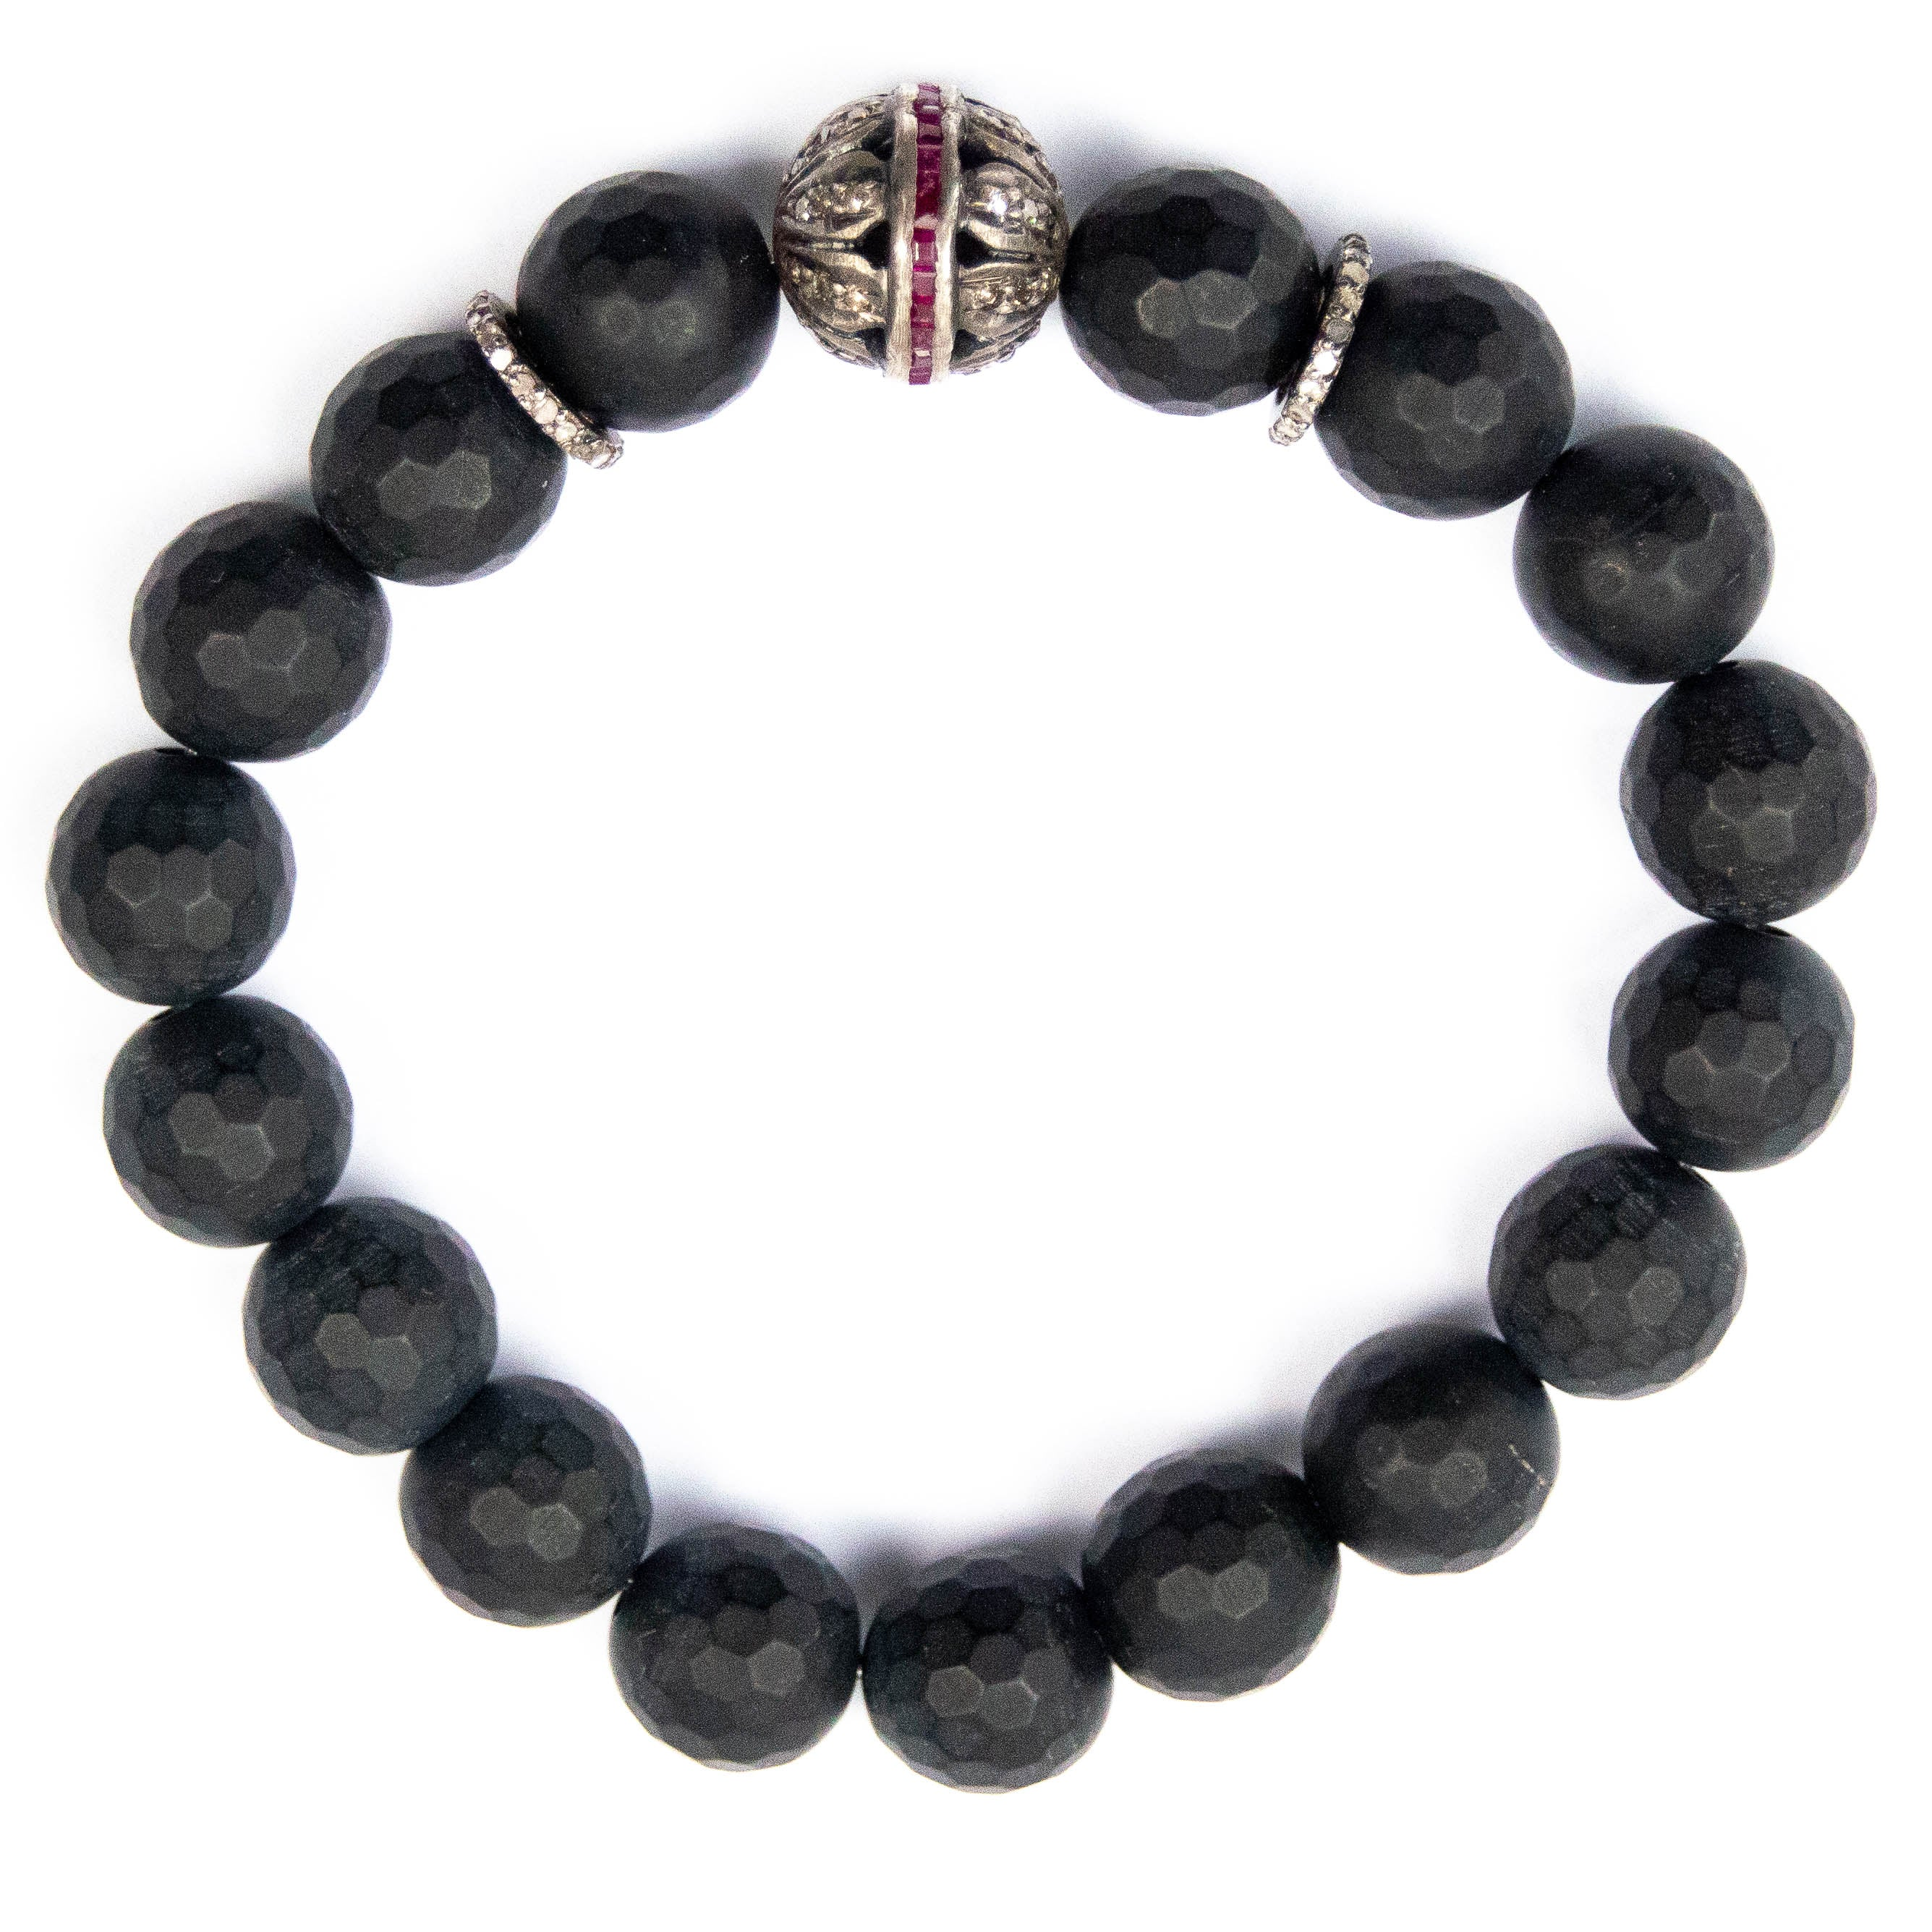 Onyx & Ruby/Diamond Ball Bracelet